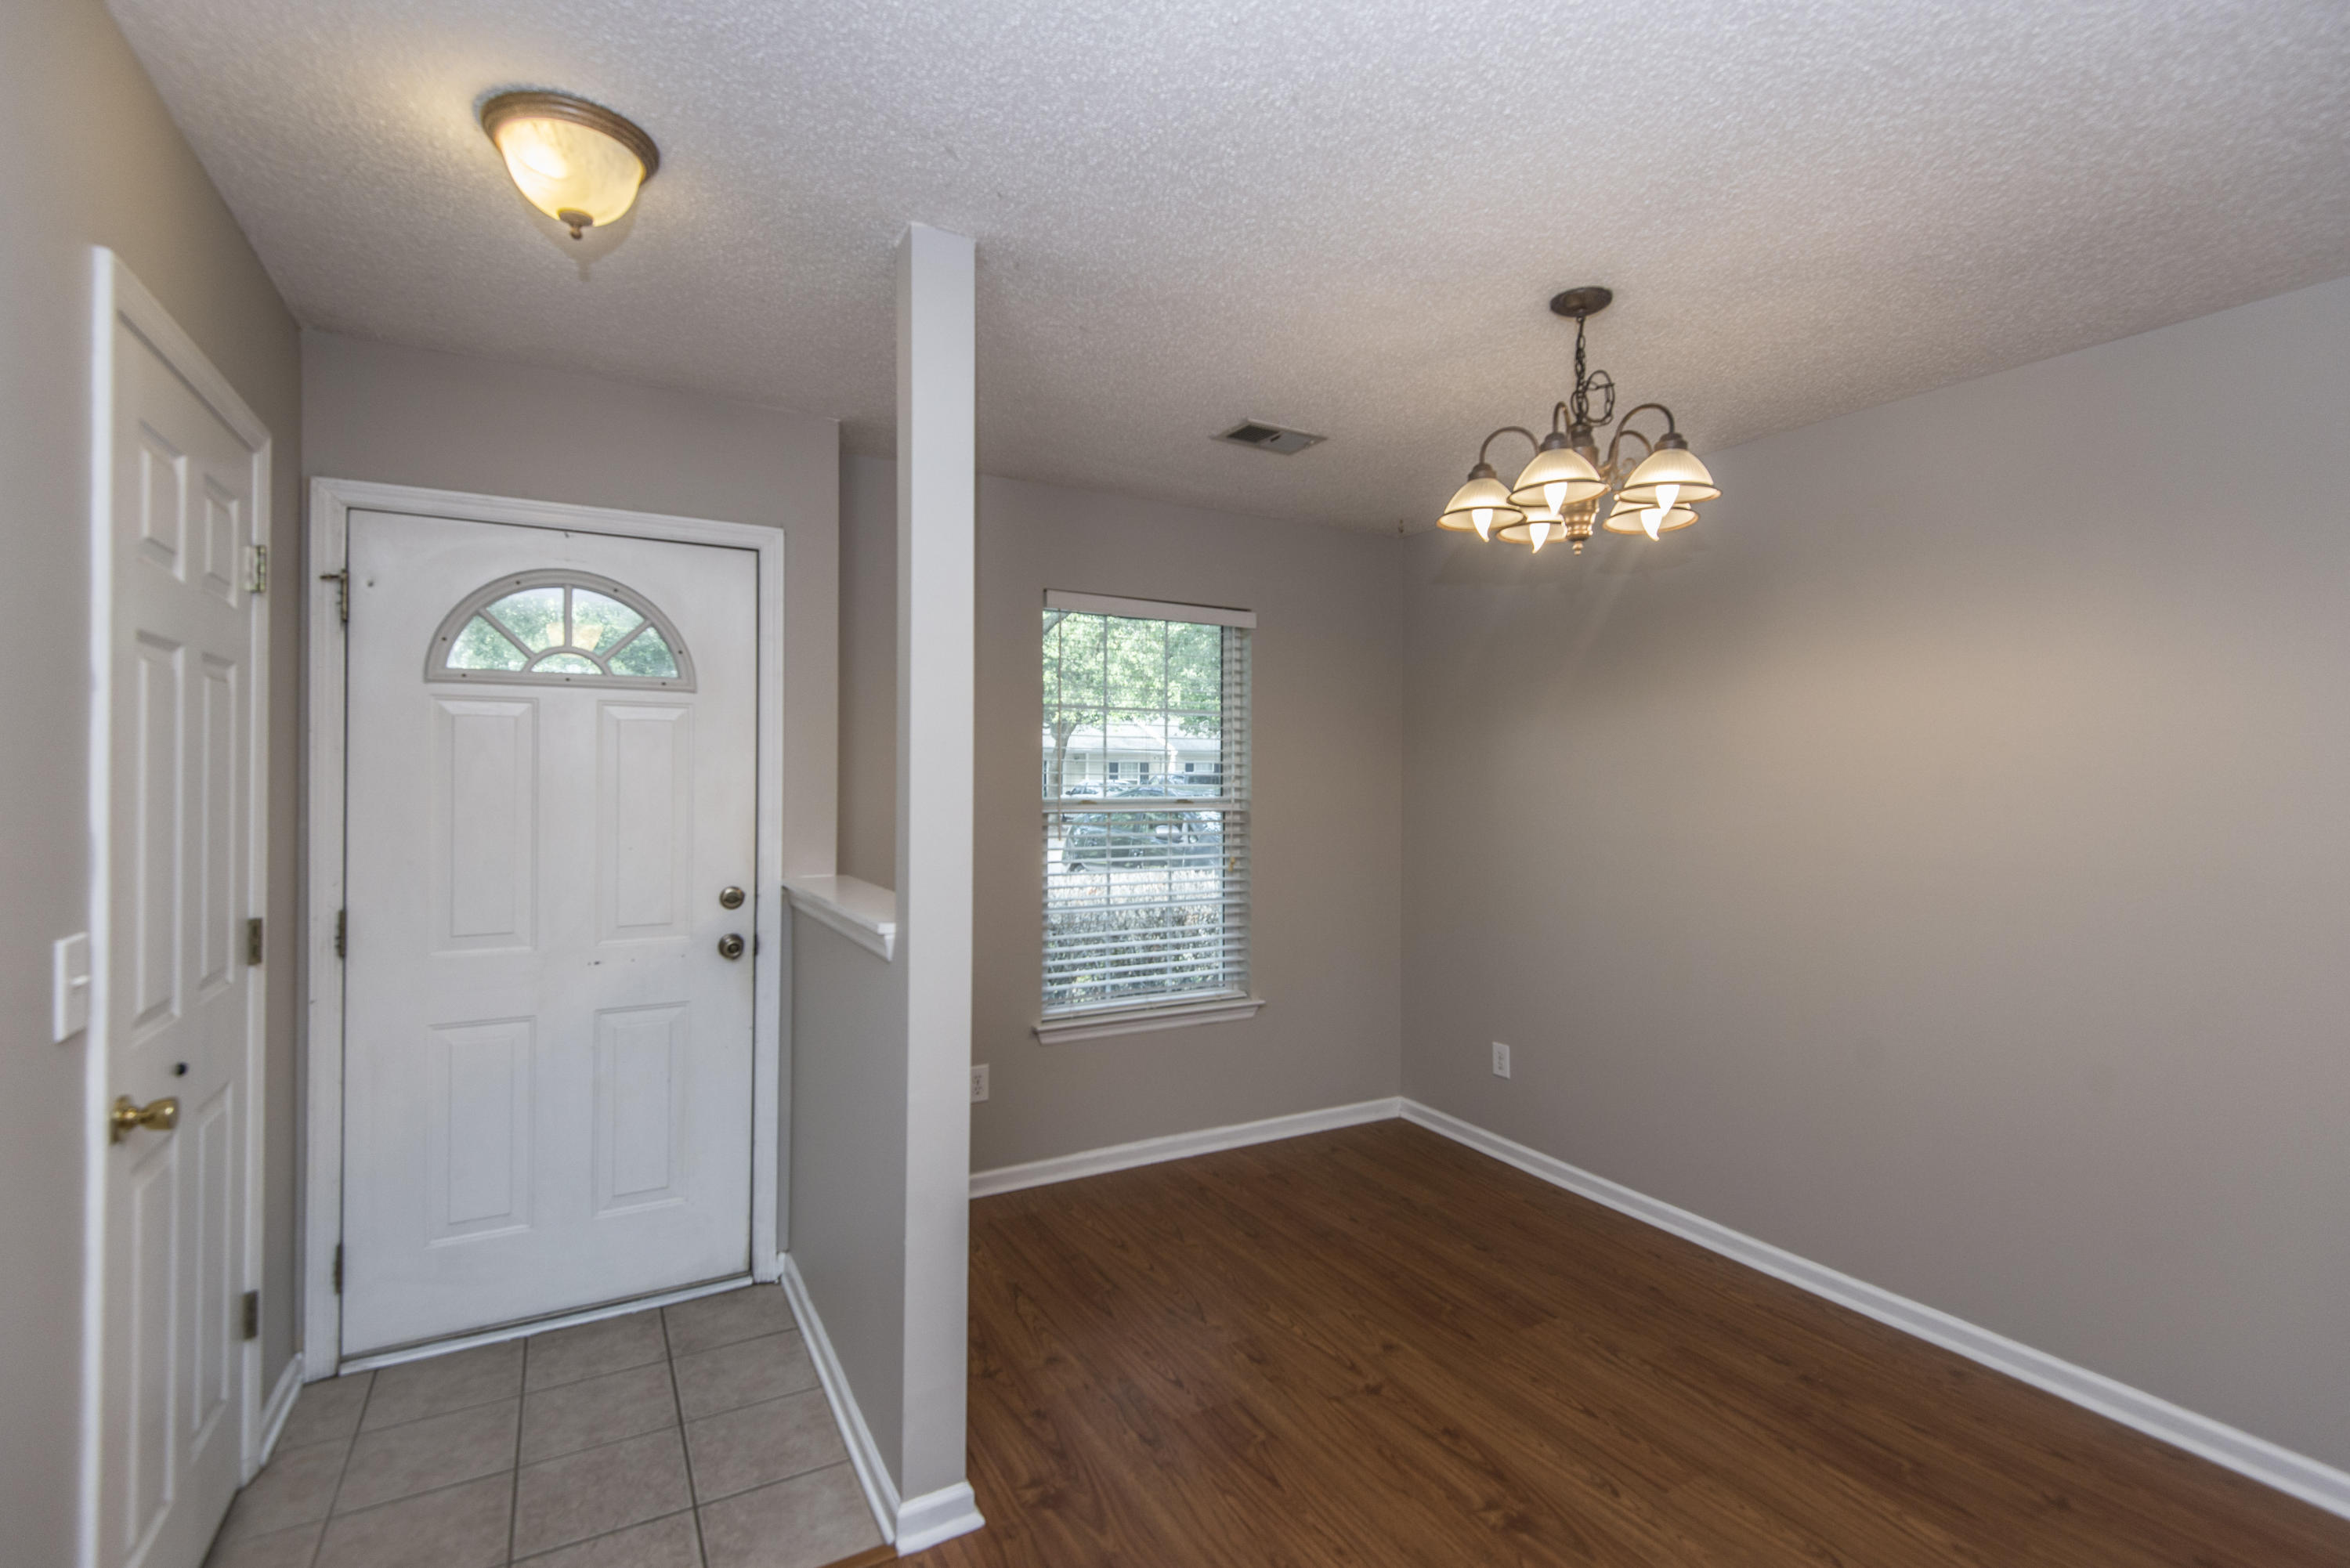 Meridian Place Homes For Sale - 1274 Apex, Charleston, SC - 20